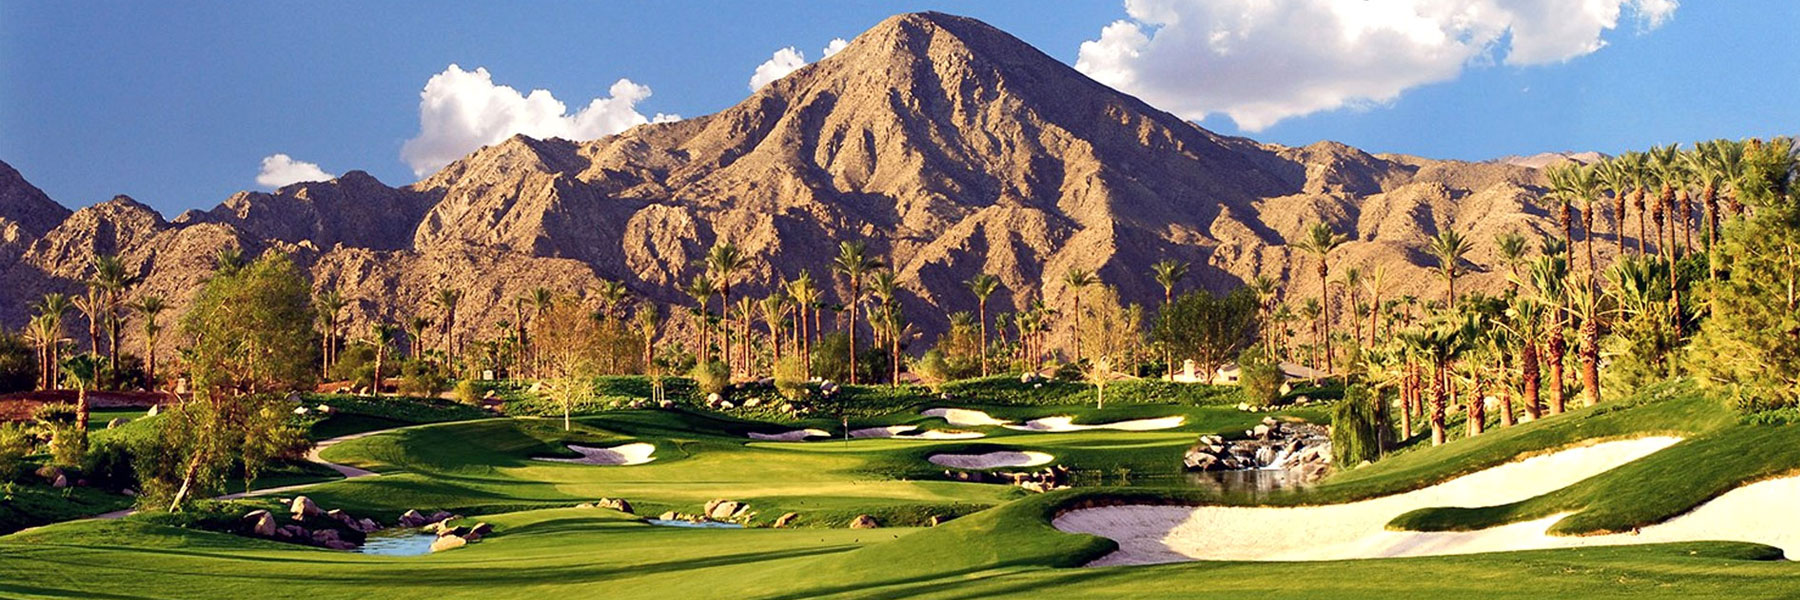 California Golf Vacation Packages